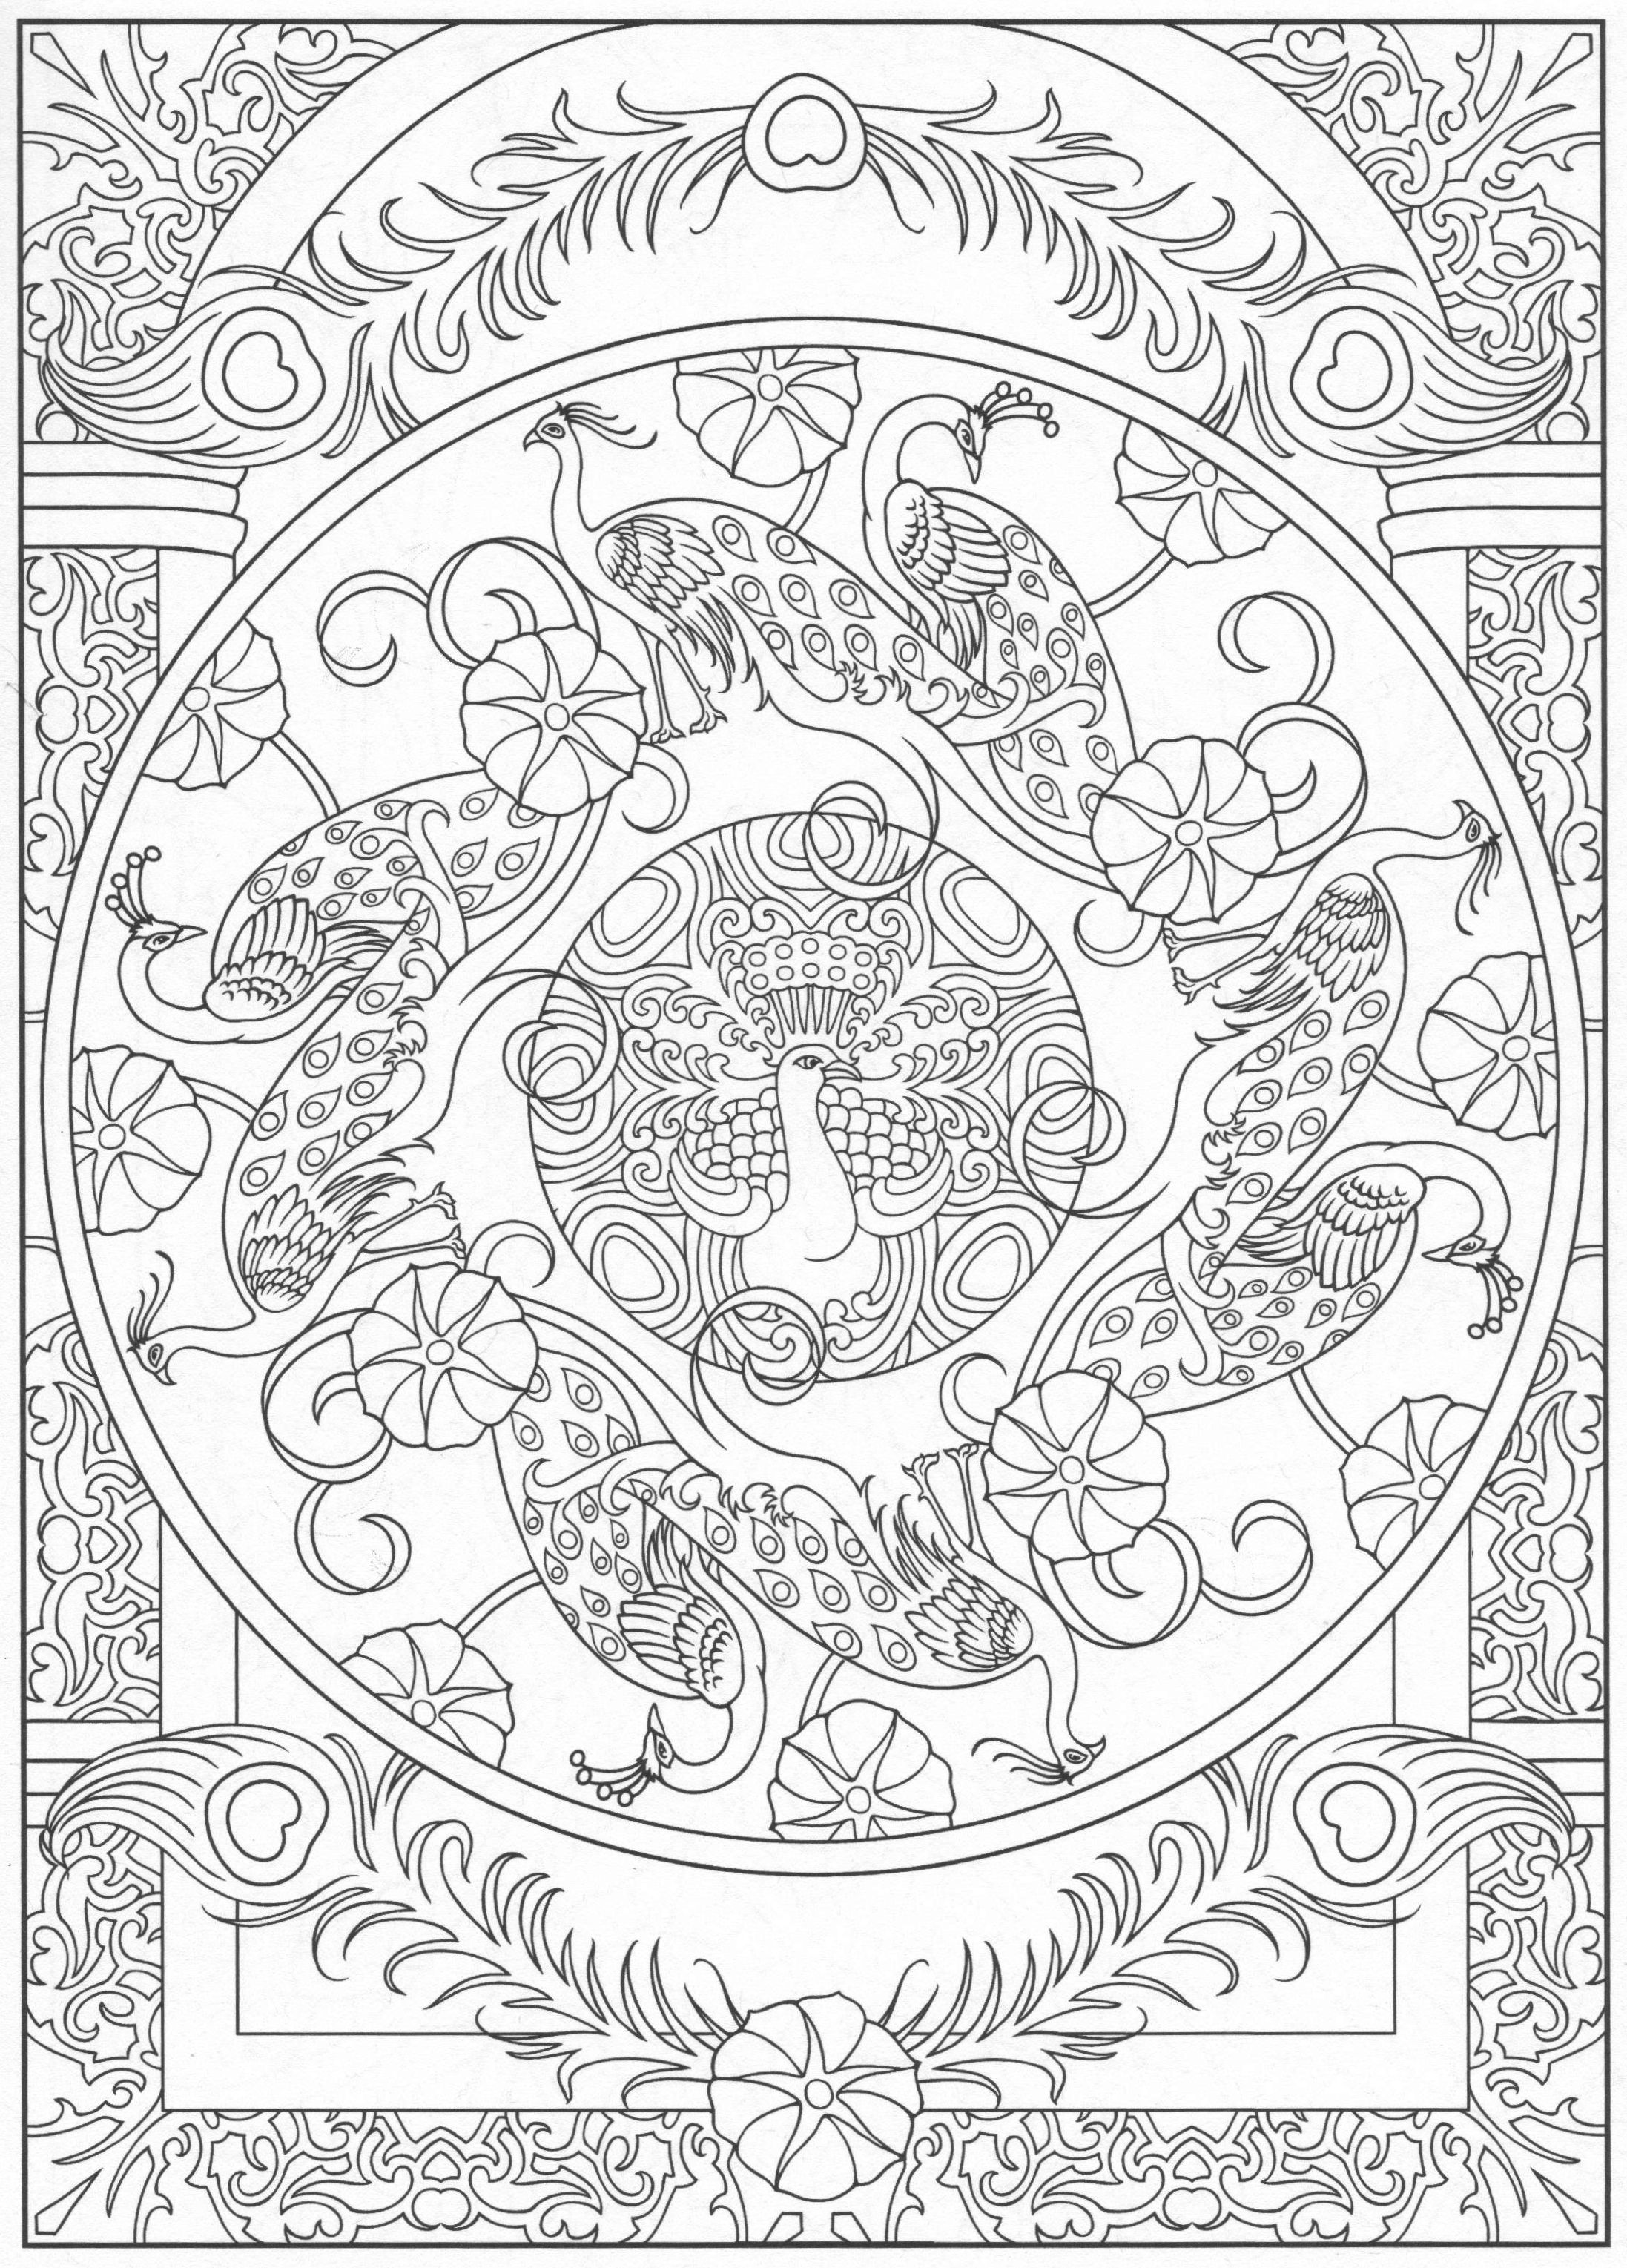 Peacock coloring page, for adults 6/31 | Coloring Pages (Peacocks ...